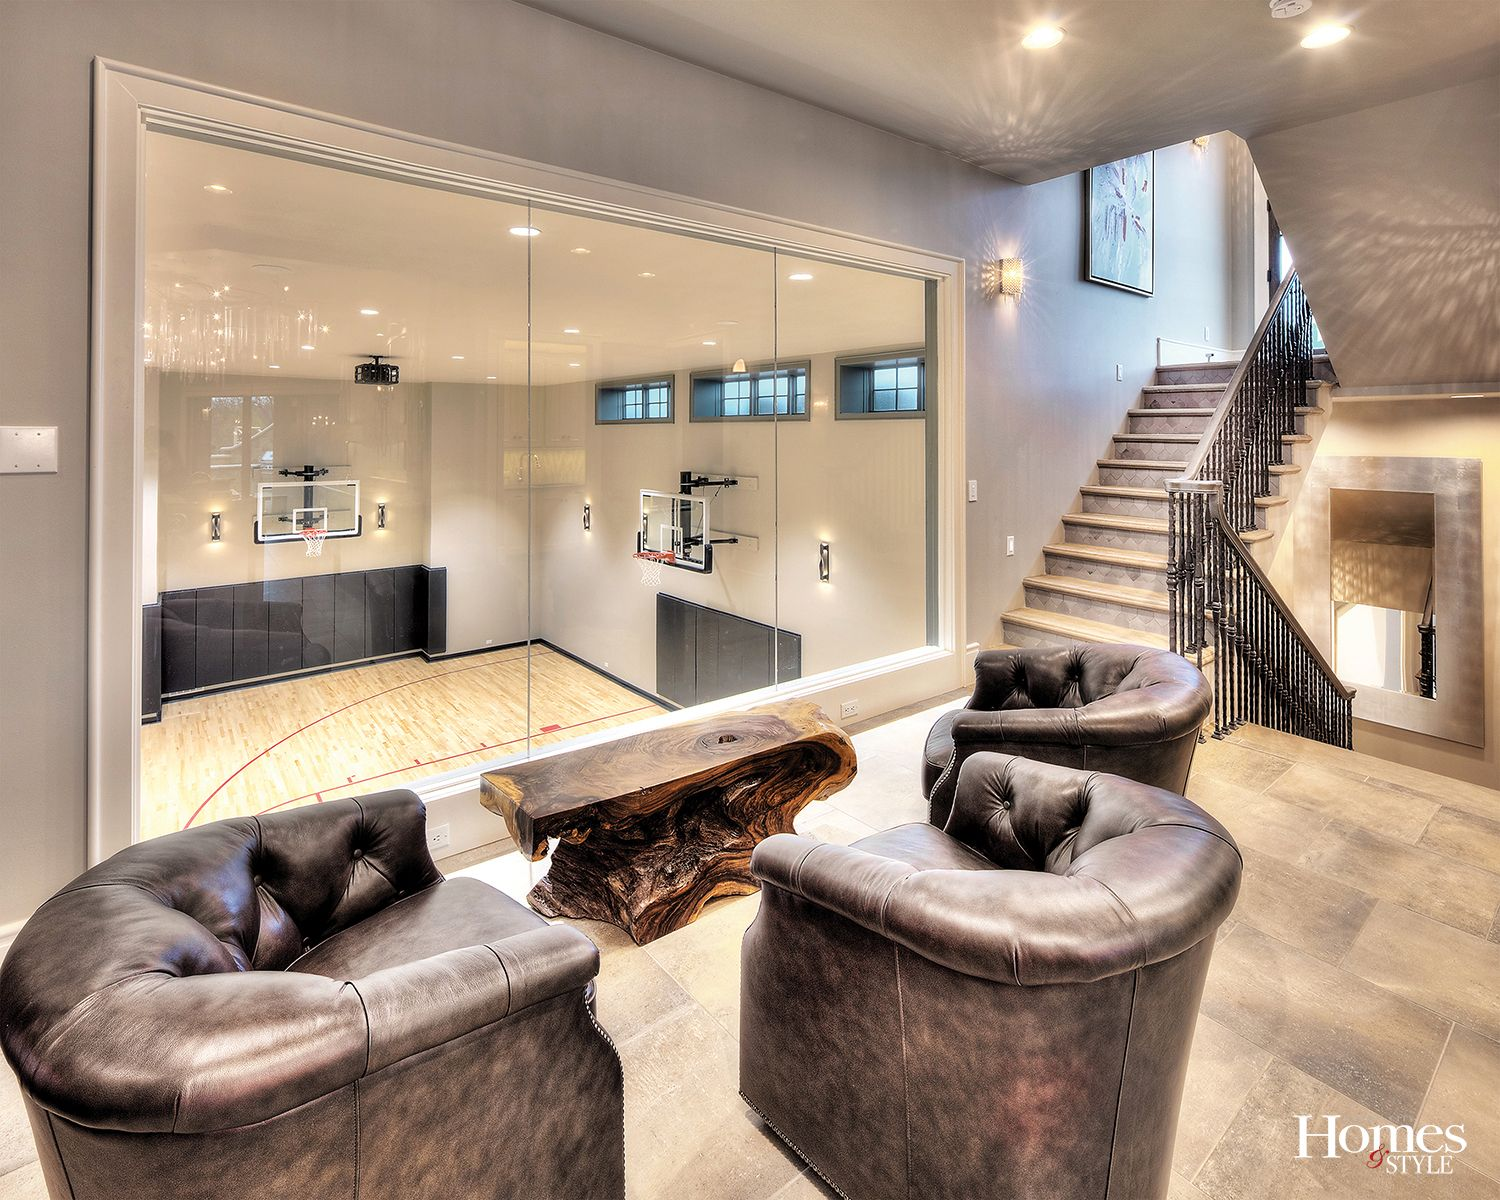 This Home Is Full Of So Much More Than Meets The Eye Consider For Example The Secret Spiral Slide Tucked Into A Lower Level Boo House Home Dream Home Design